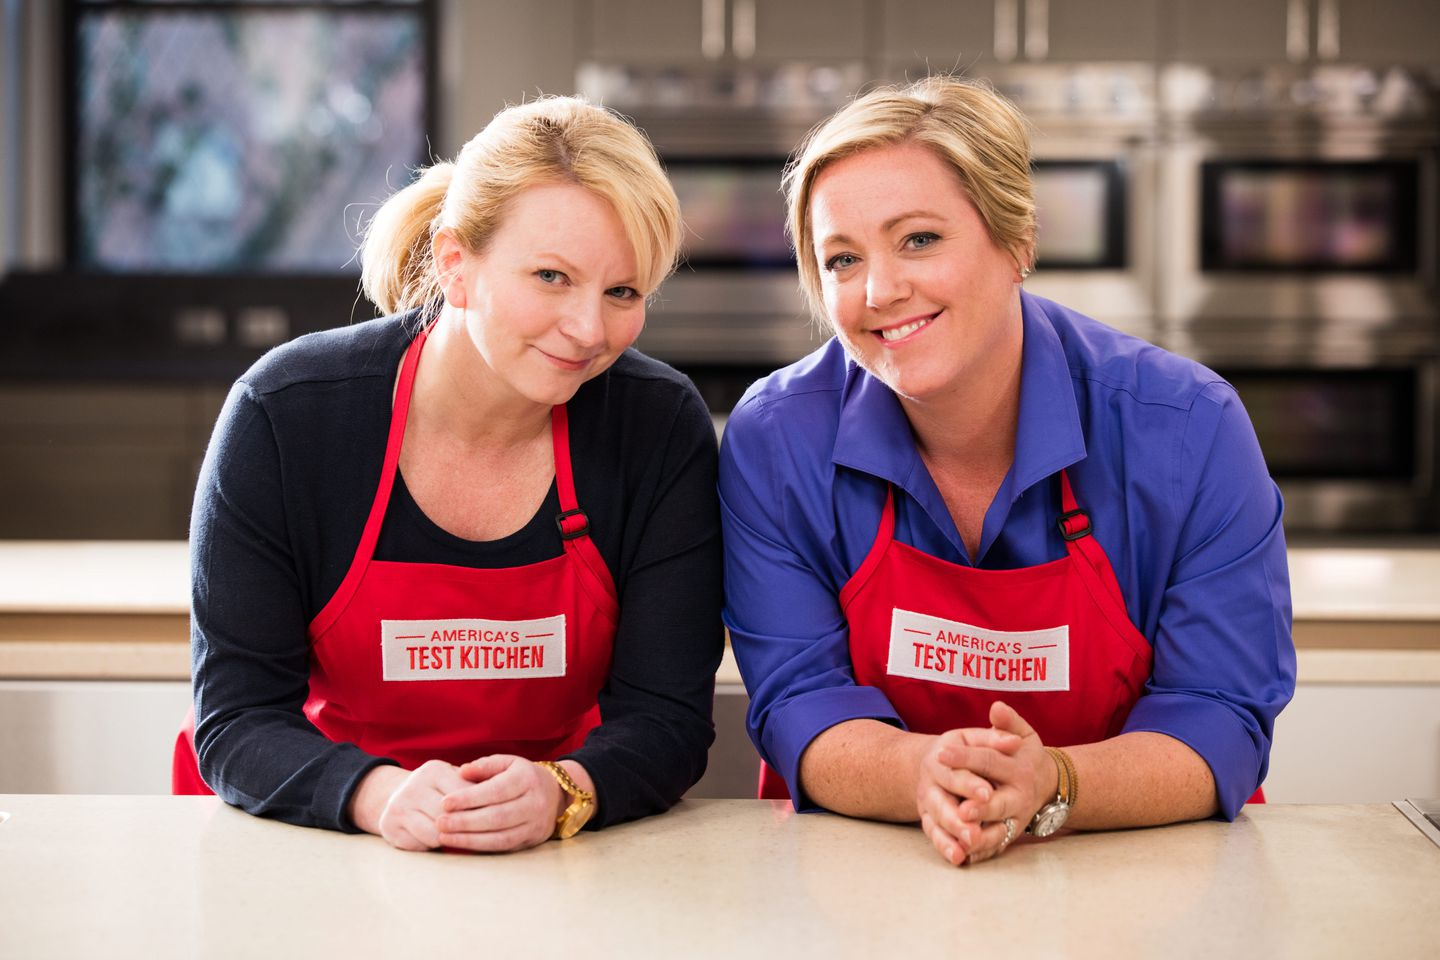 America S Test Kitchen Has A New Host Two Of Them The Boston Globe